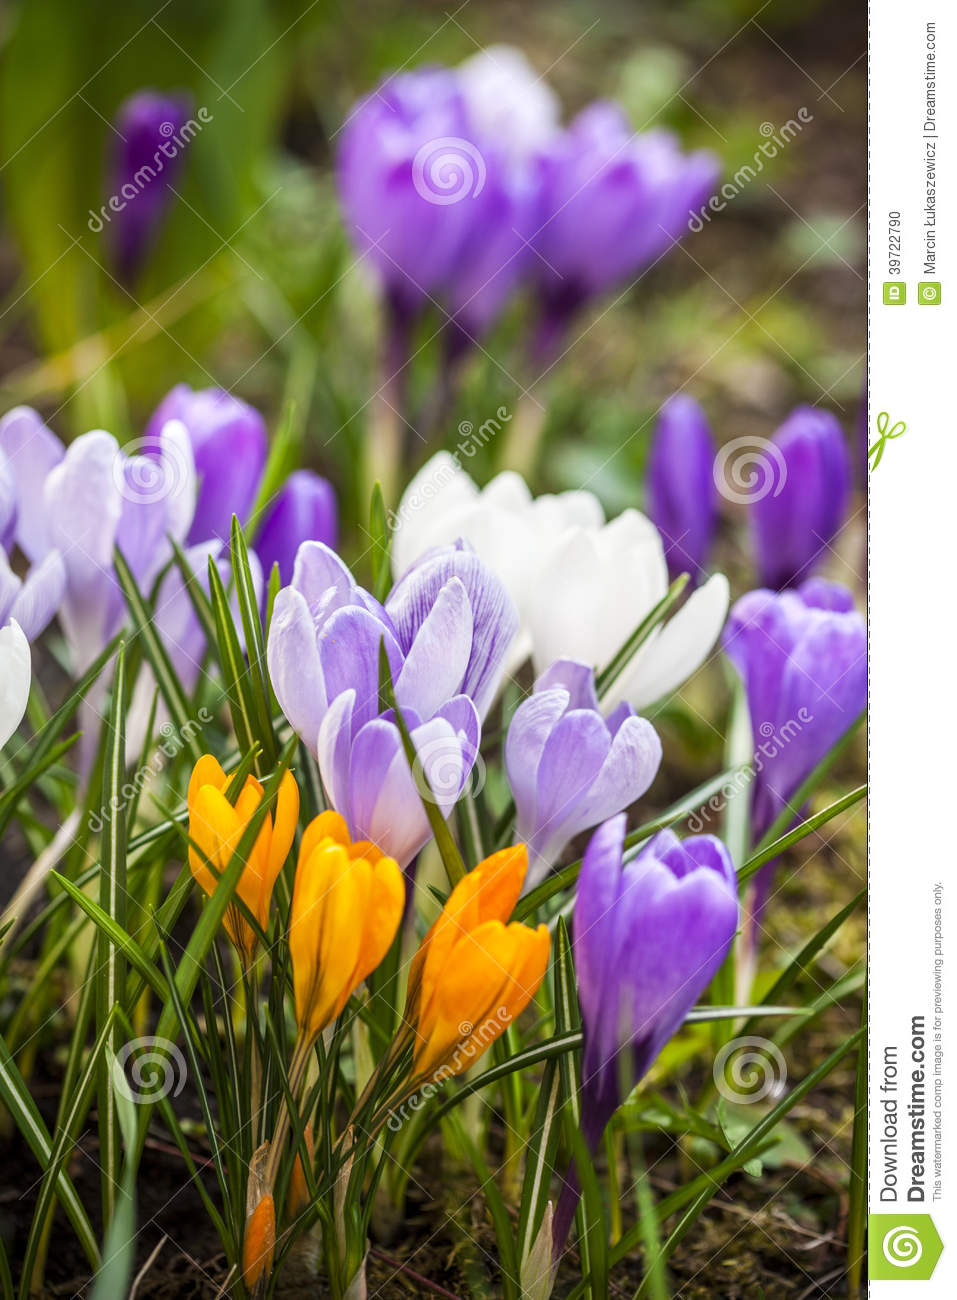 en gros plan de petites fleurs violettes de jardin de crocus photo stock image du instruction. Black Bedroom Furniture Sets. Home Design Ideas